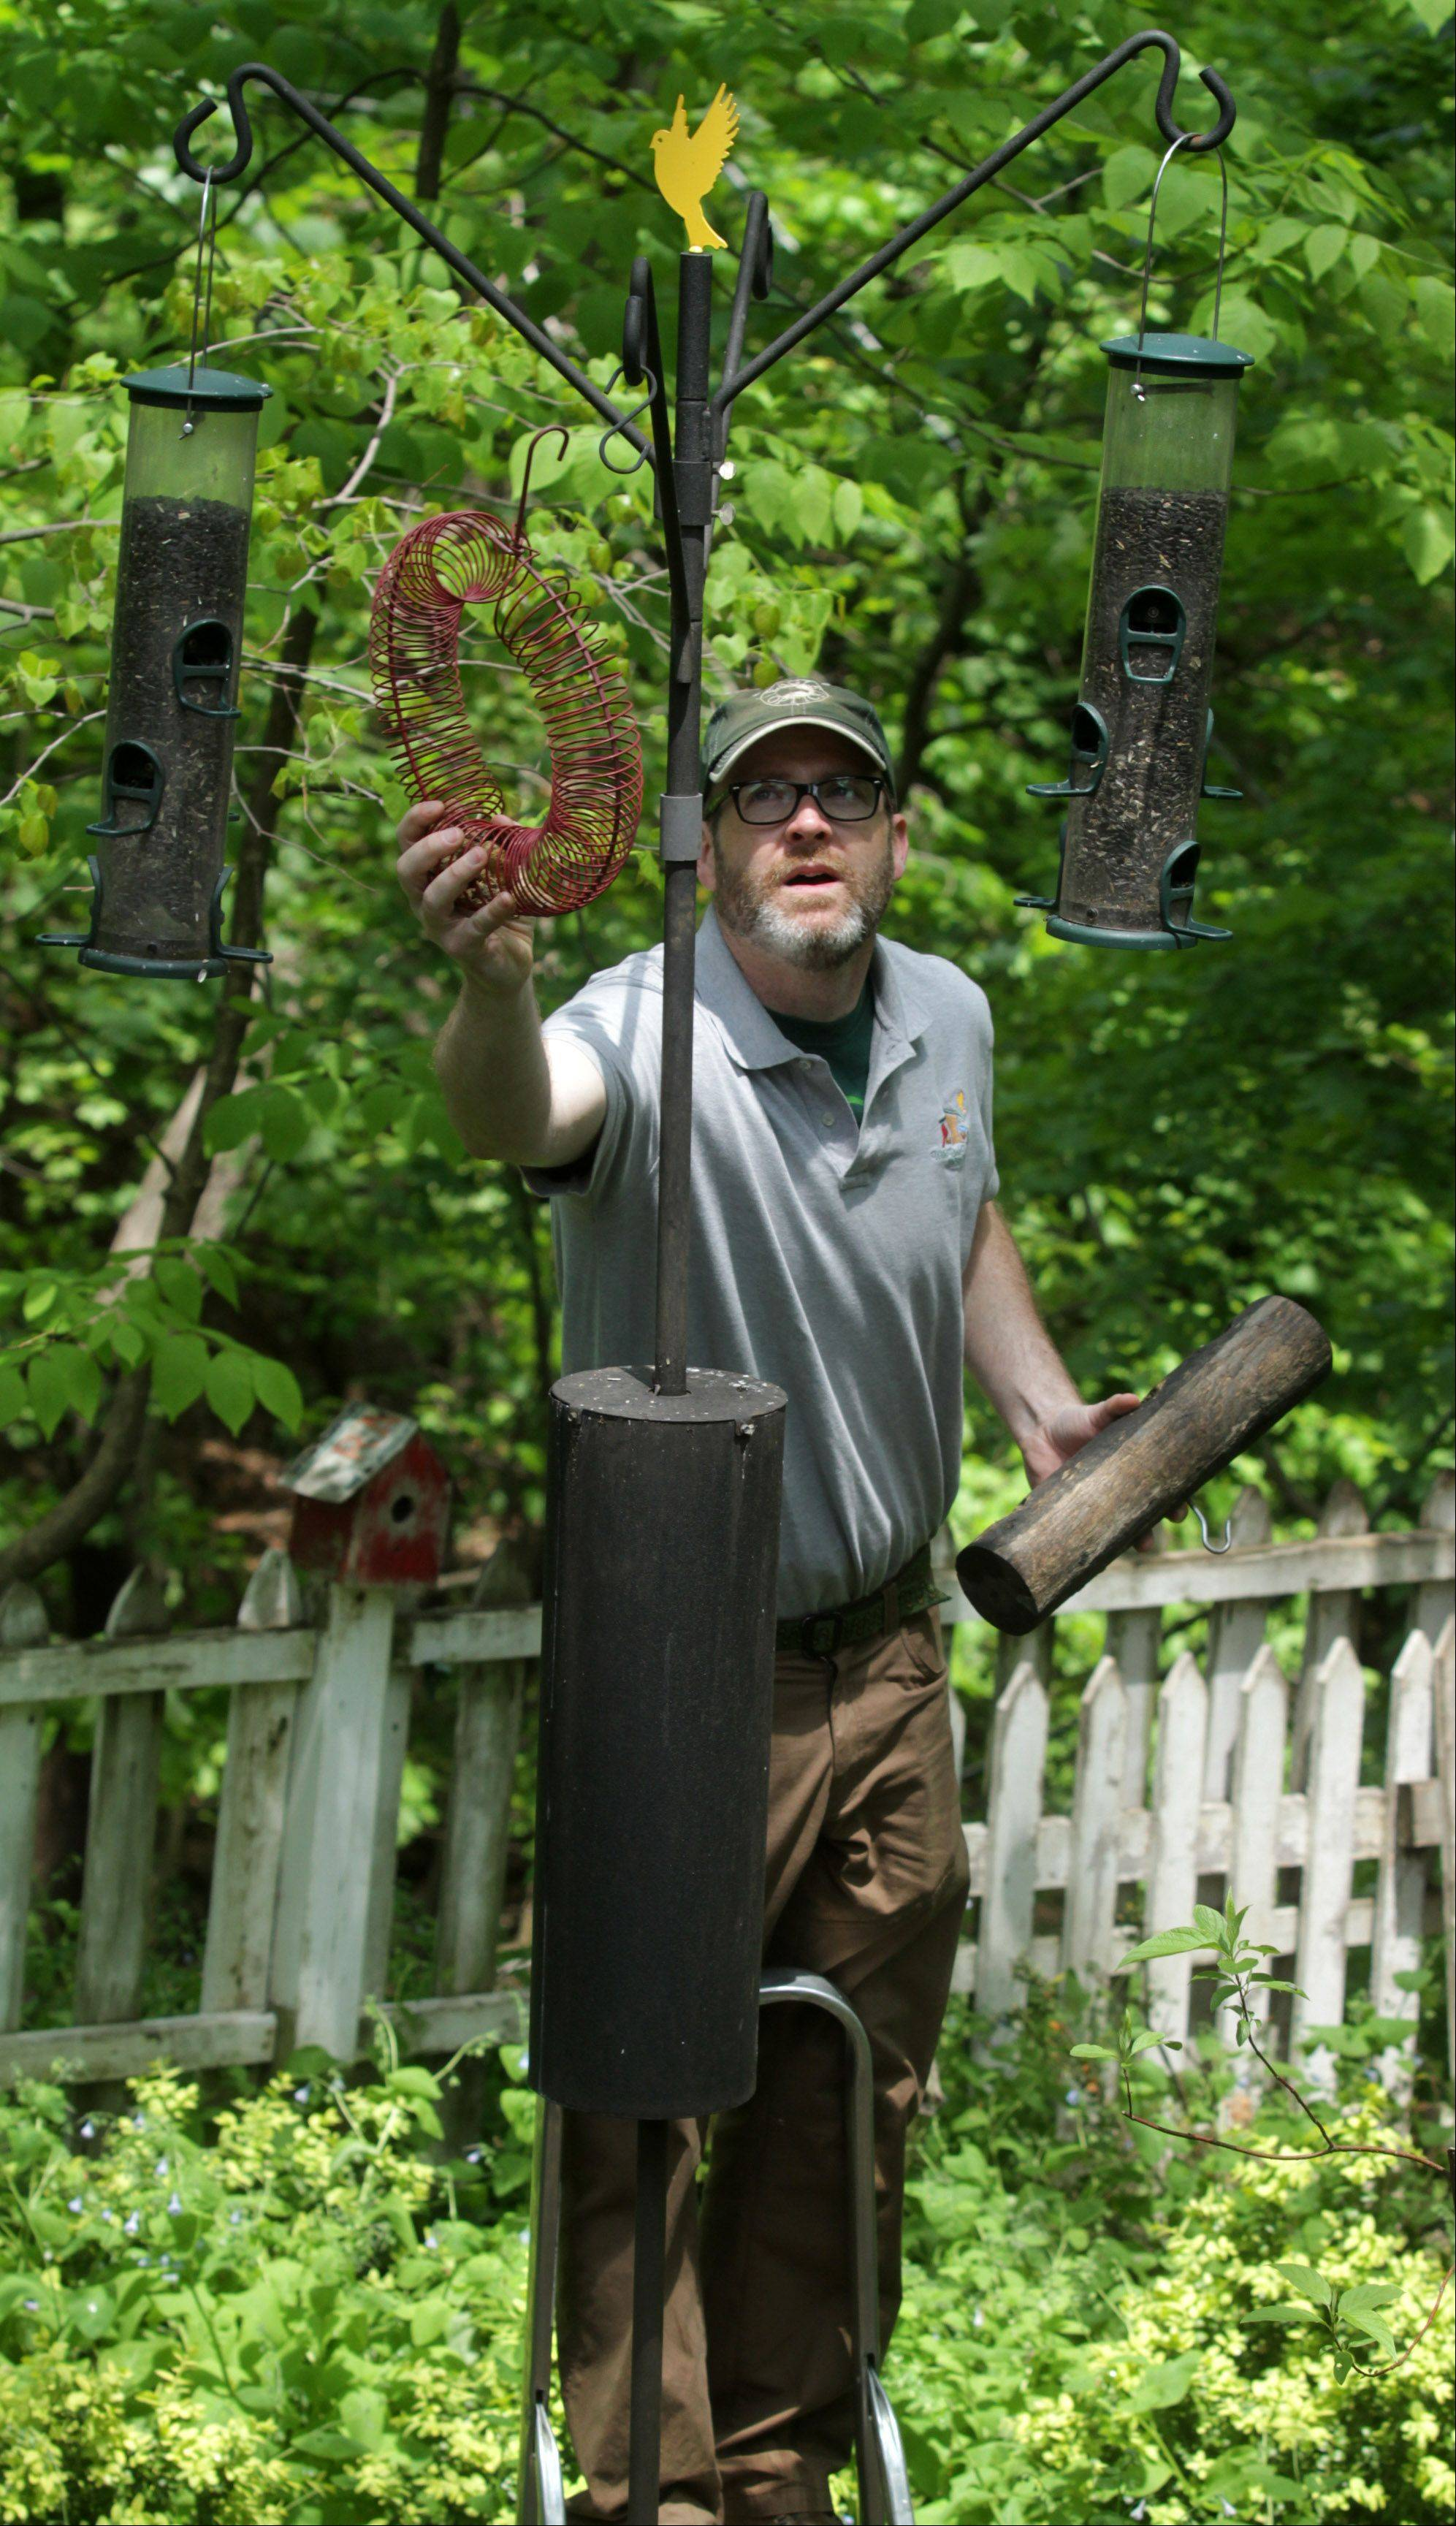 Birdscaper Tim Joyce removes a peanut wreath bird feeder to fill in Darlene Schuff's backyard.